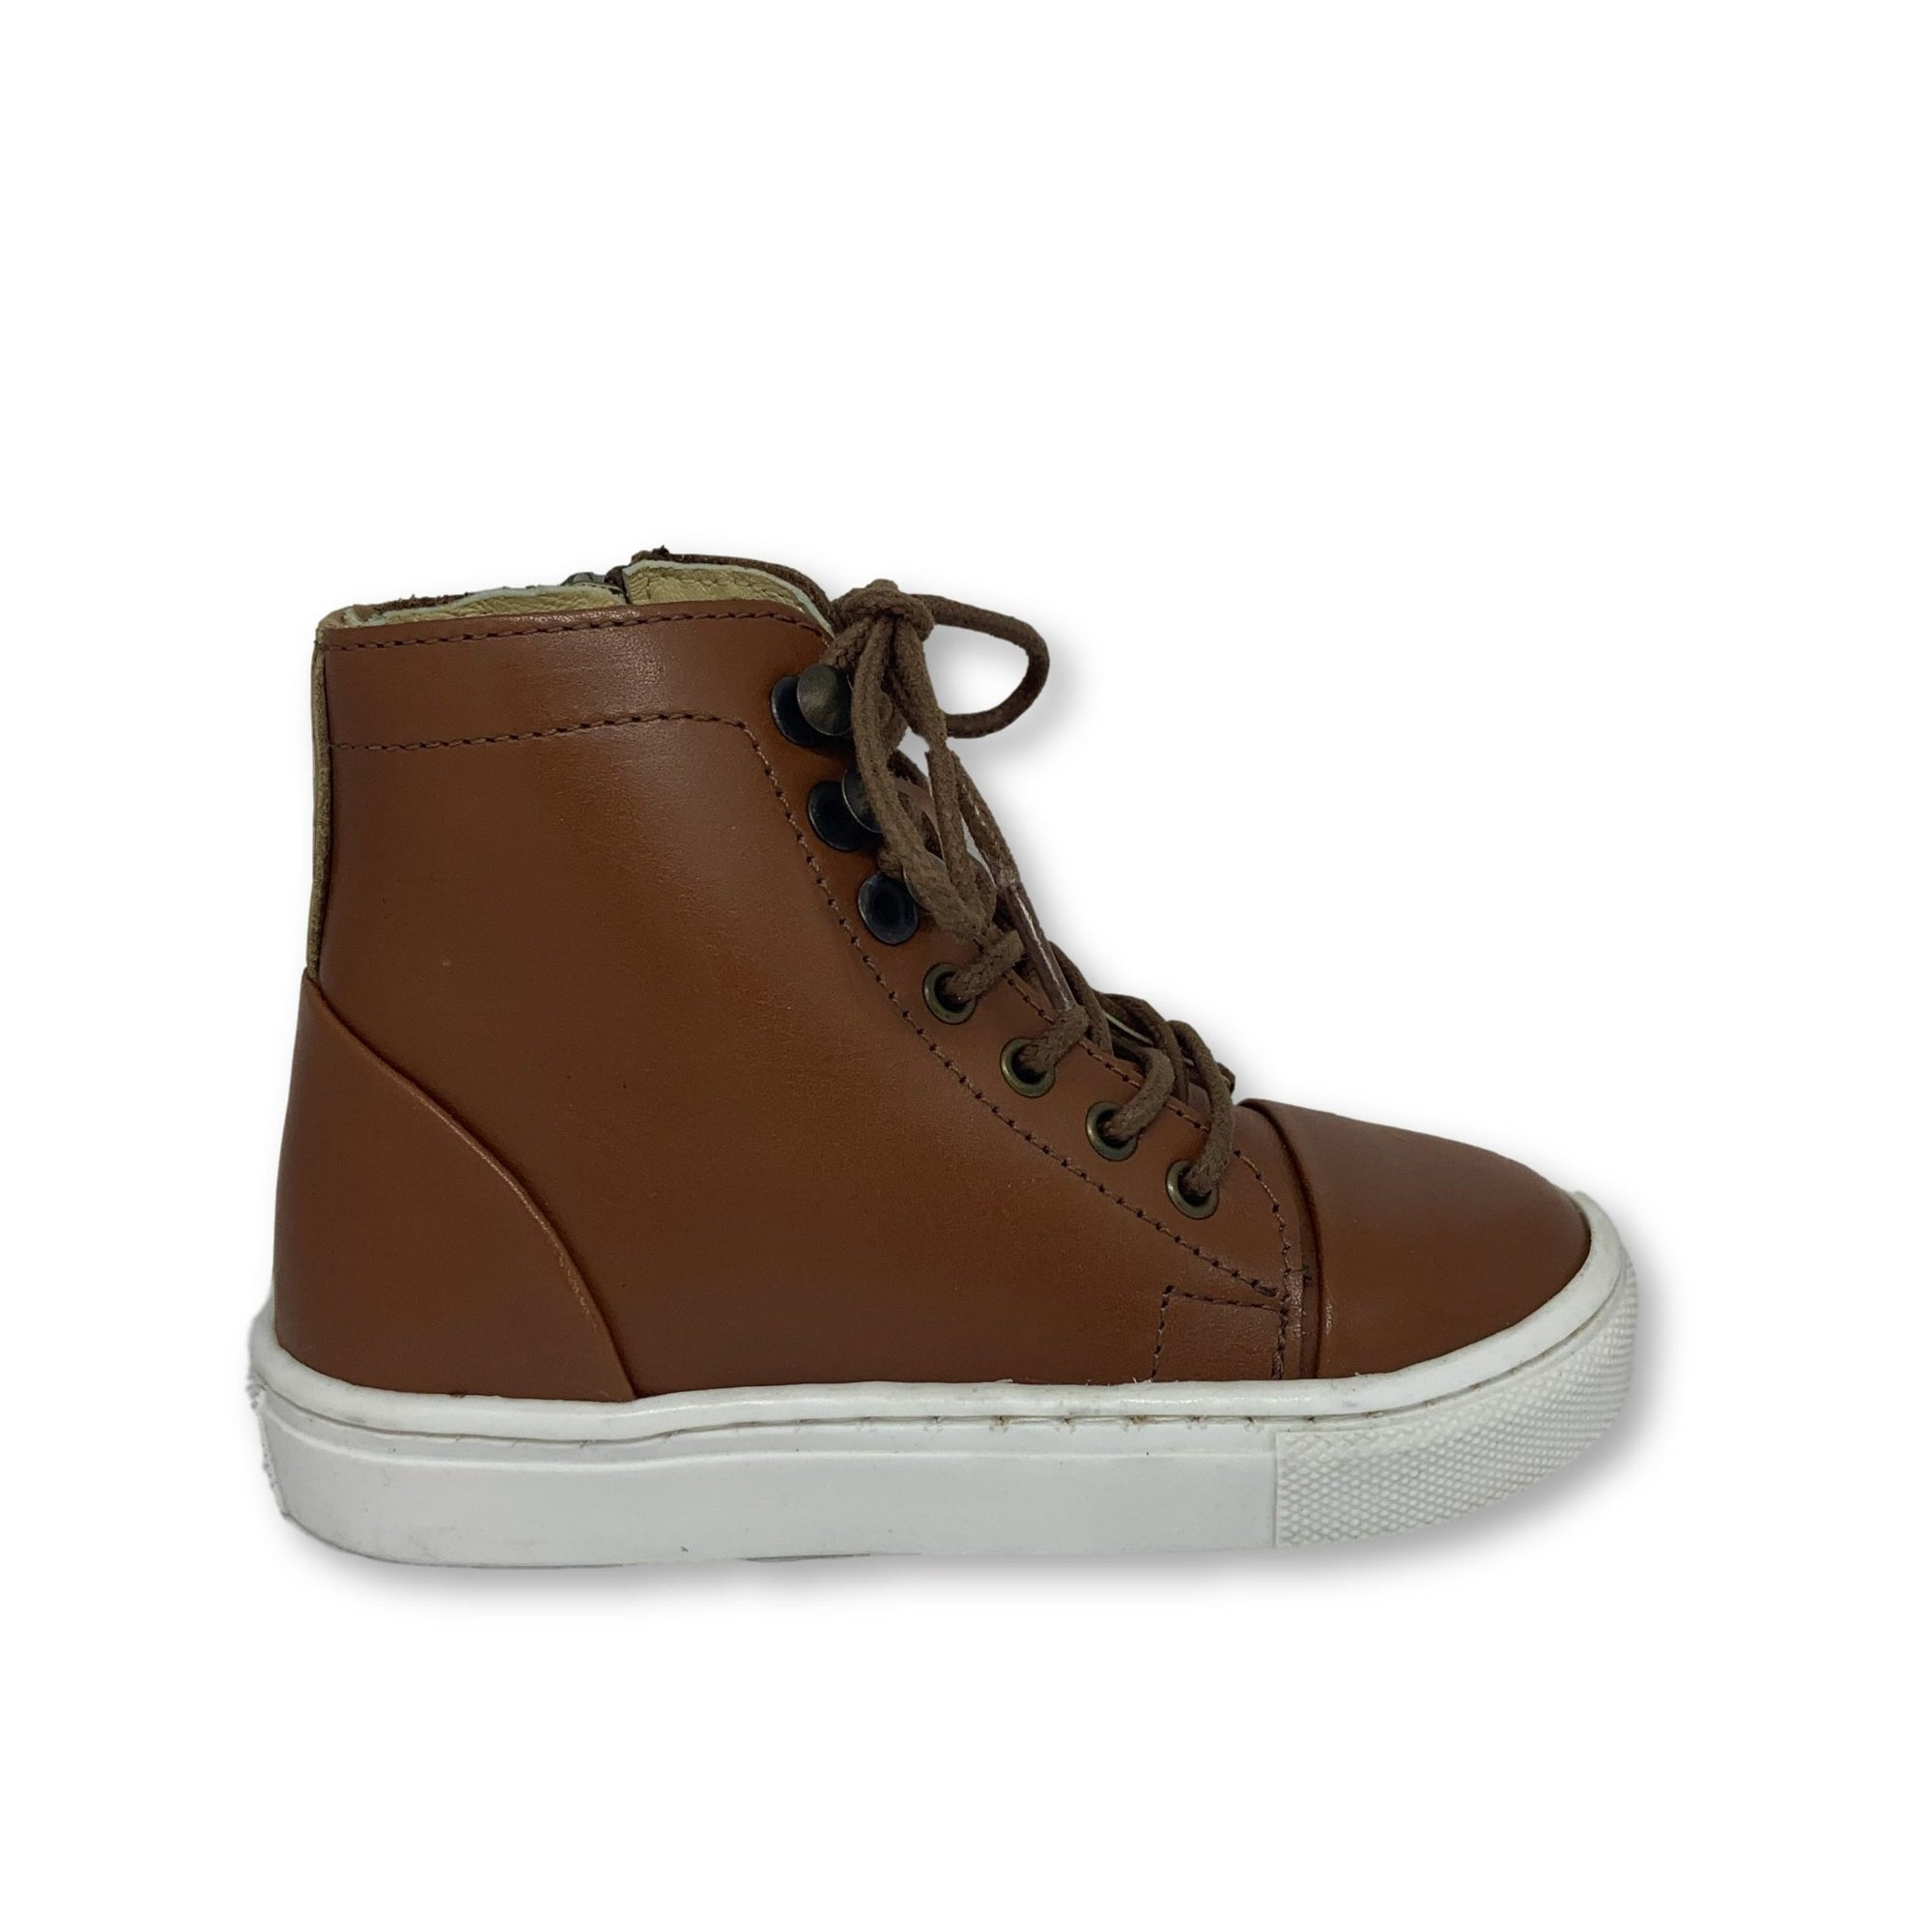 Young Soles Chestnut Brown High Top Sneaker-Tassel Children Shoes